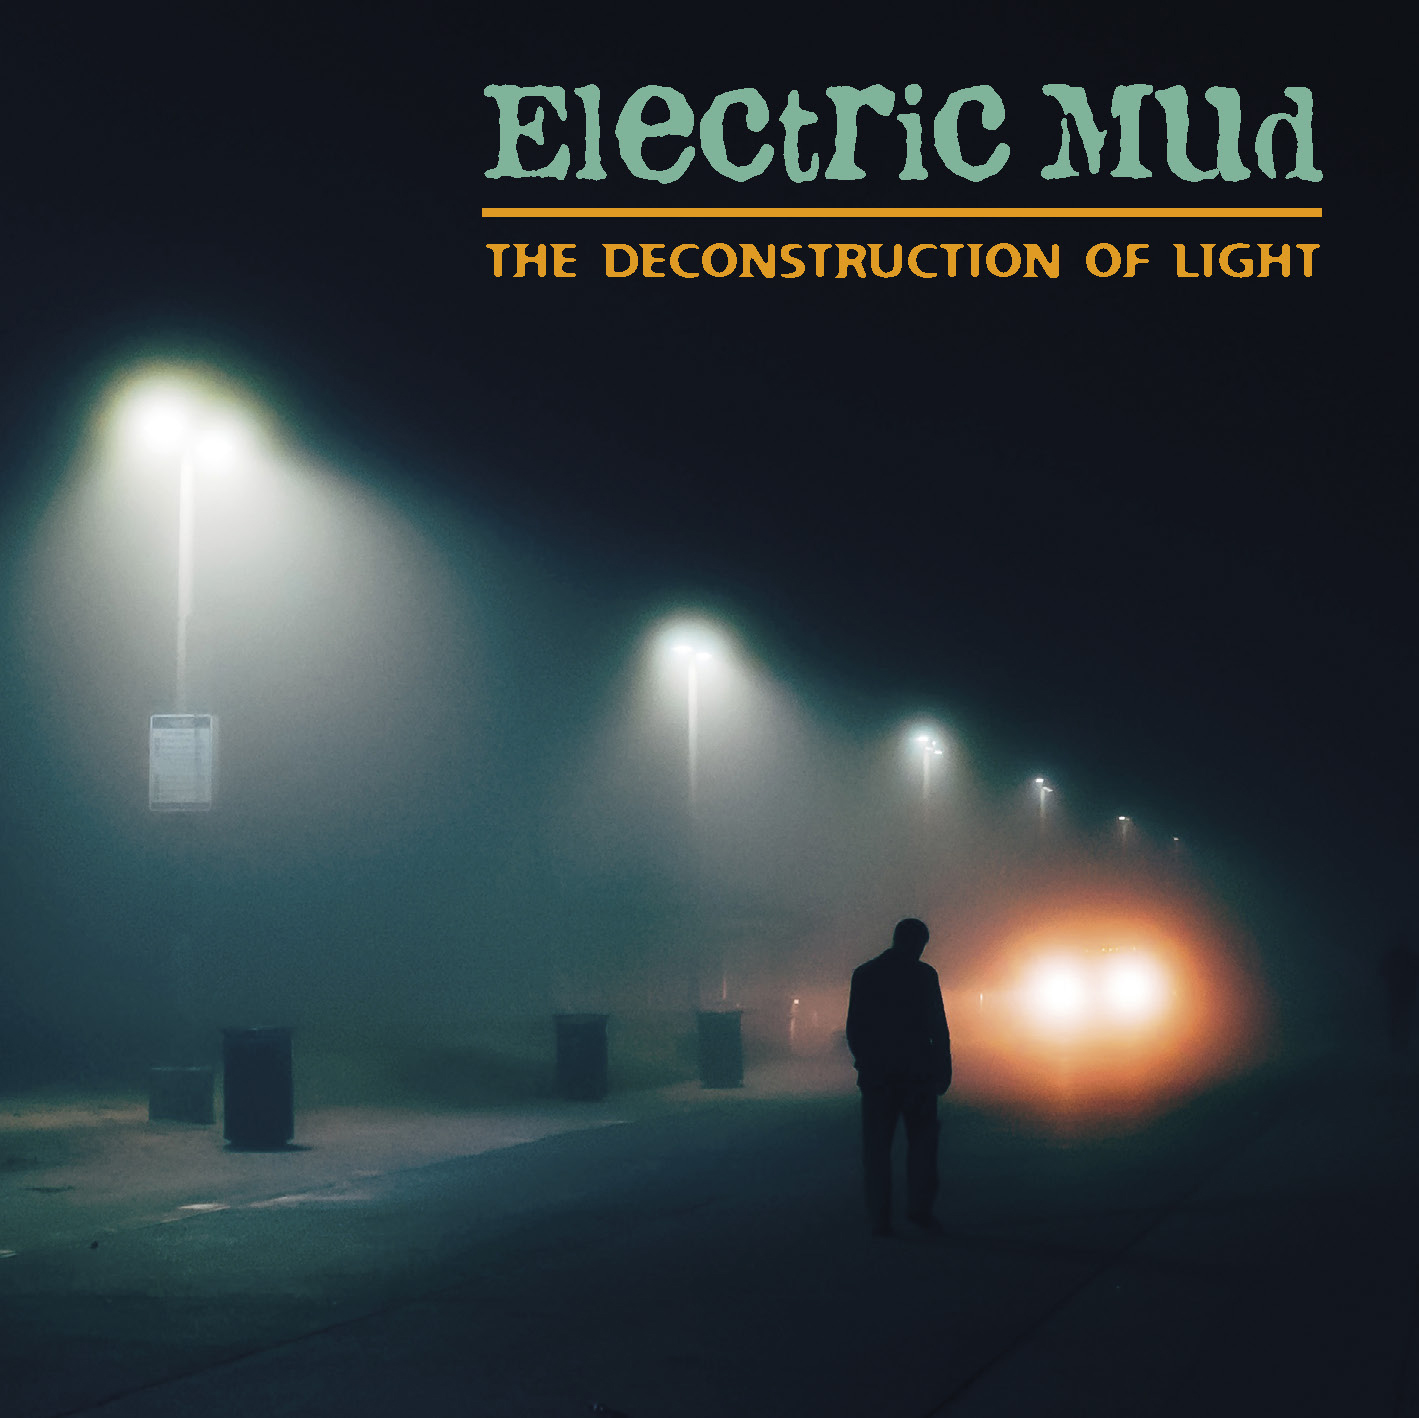 Album Cover _The Deconstruction of Light_